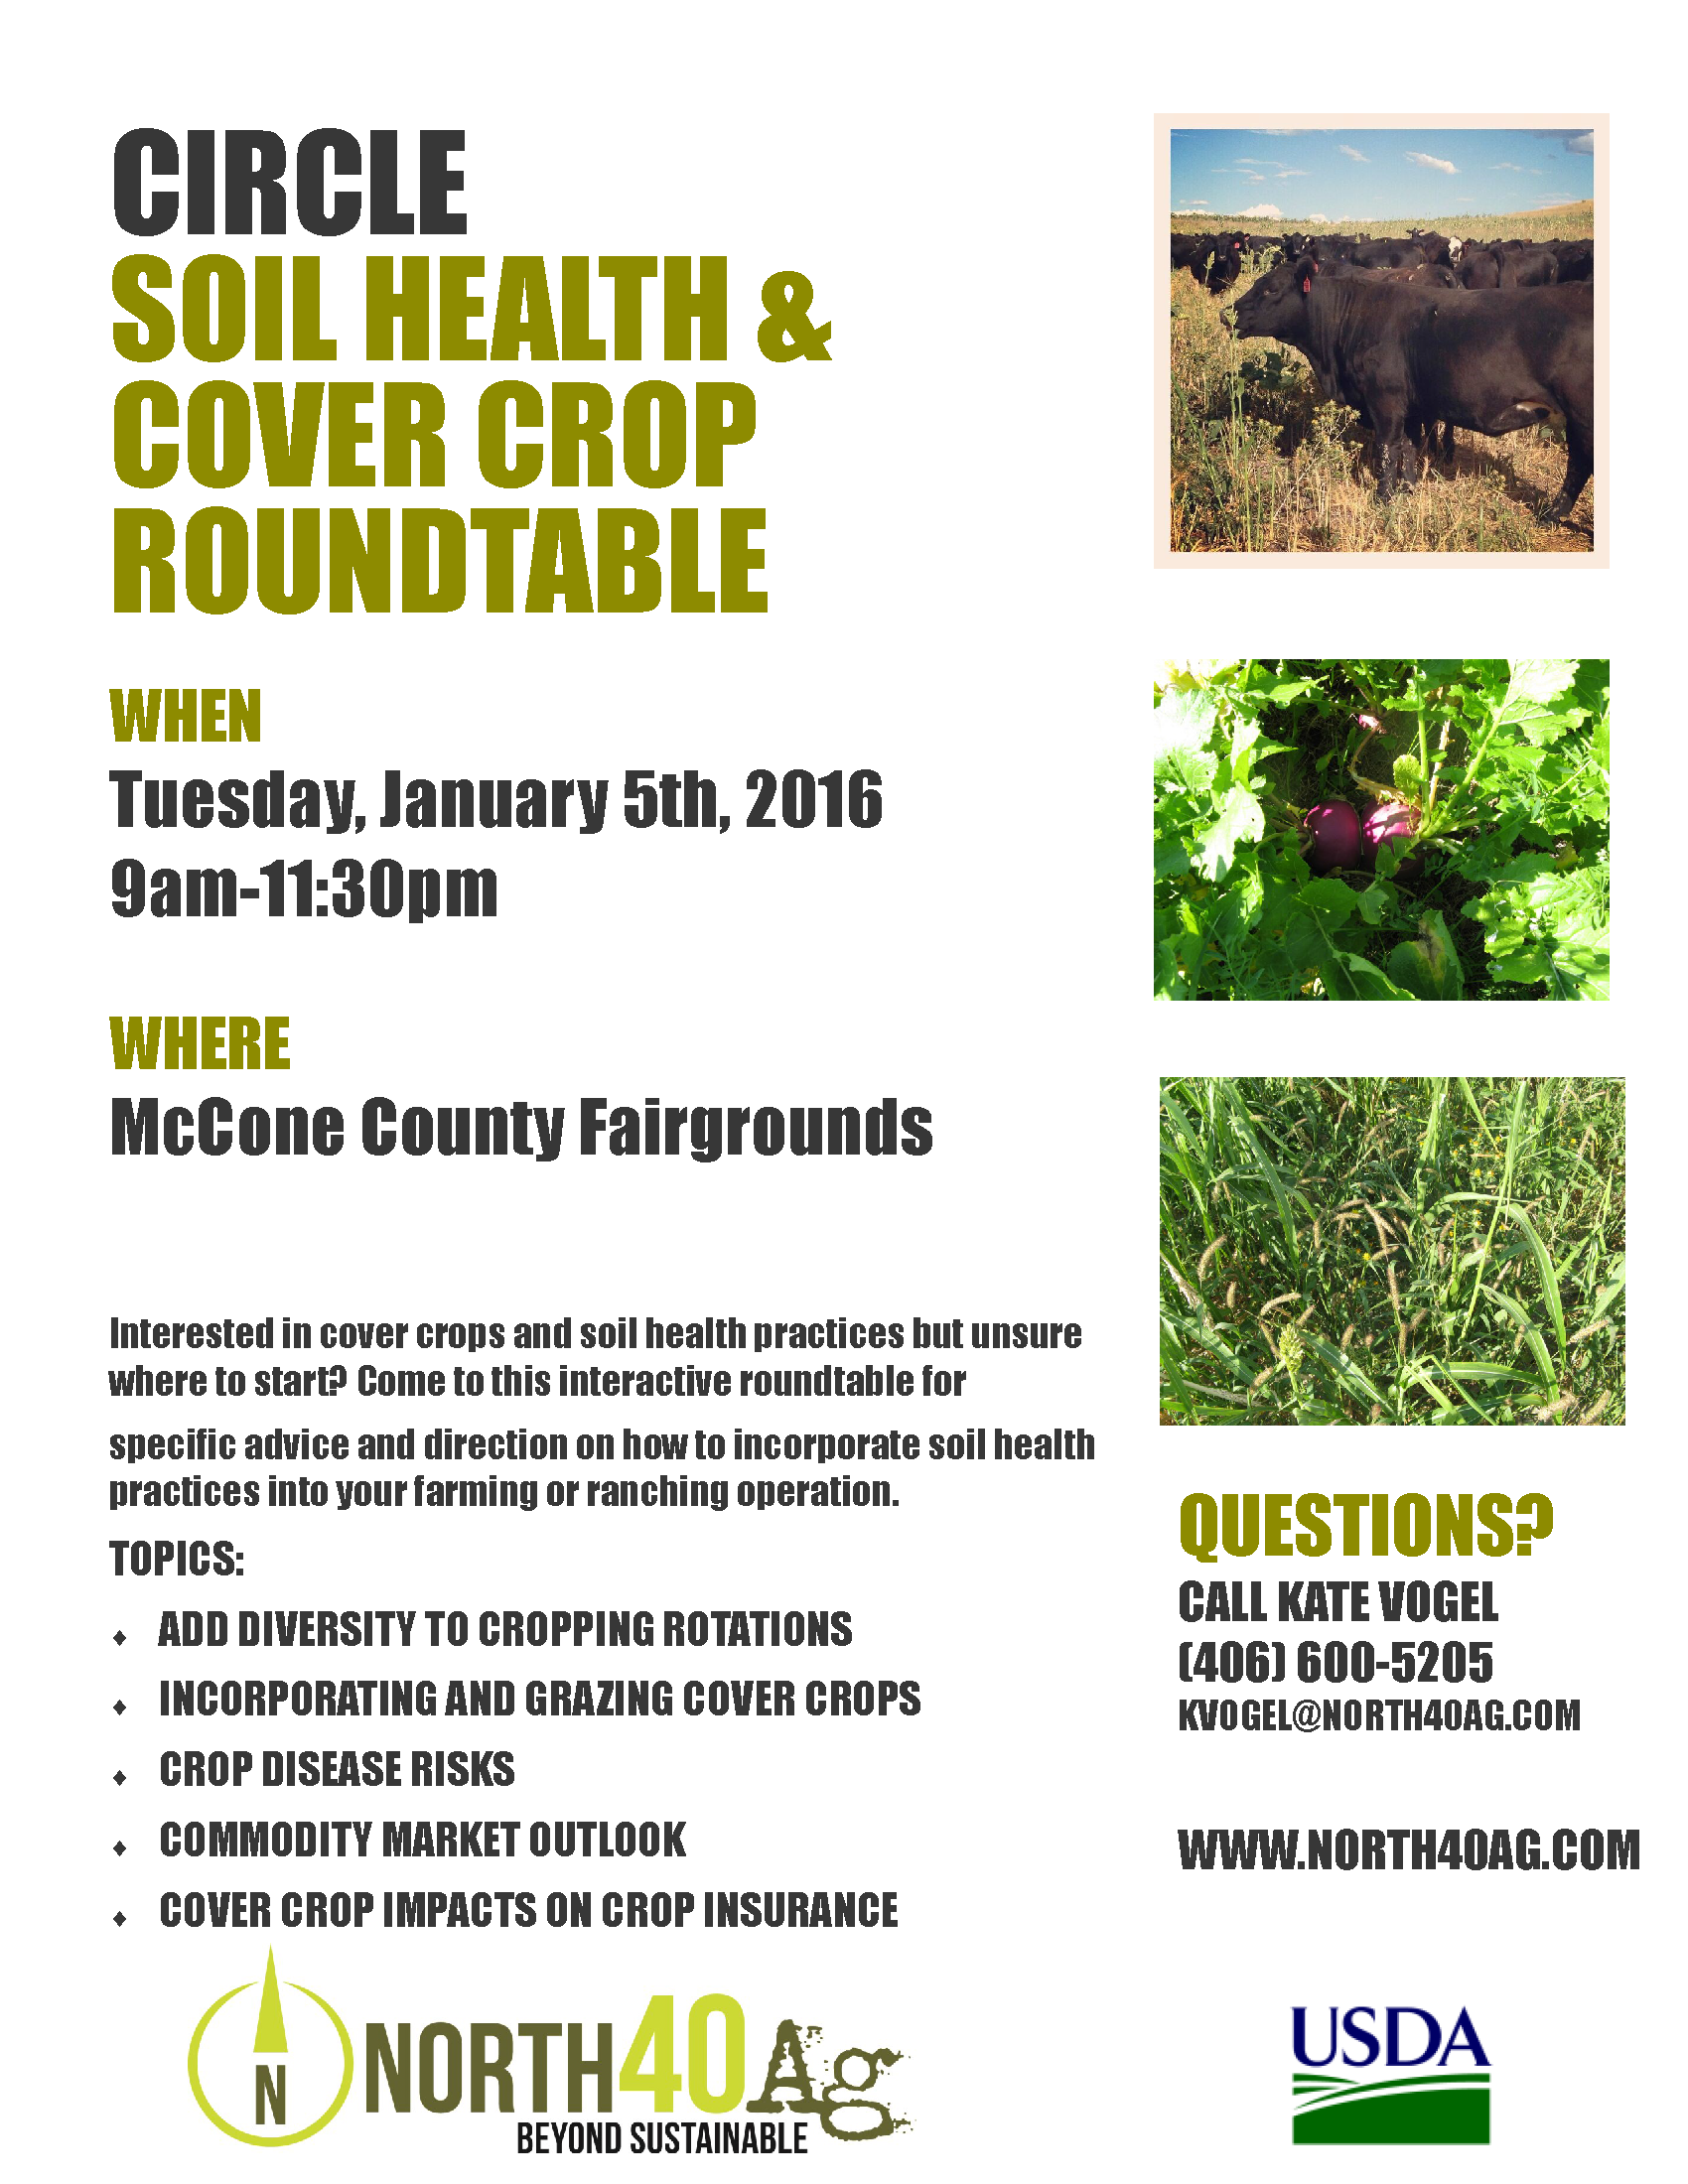 Montana mccone county circle - Circle Soil Health Cover Crop Roundtable